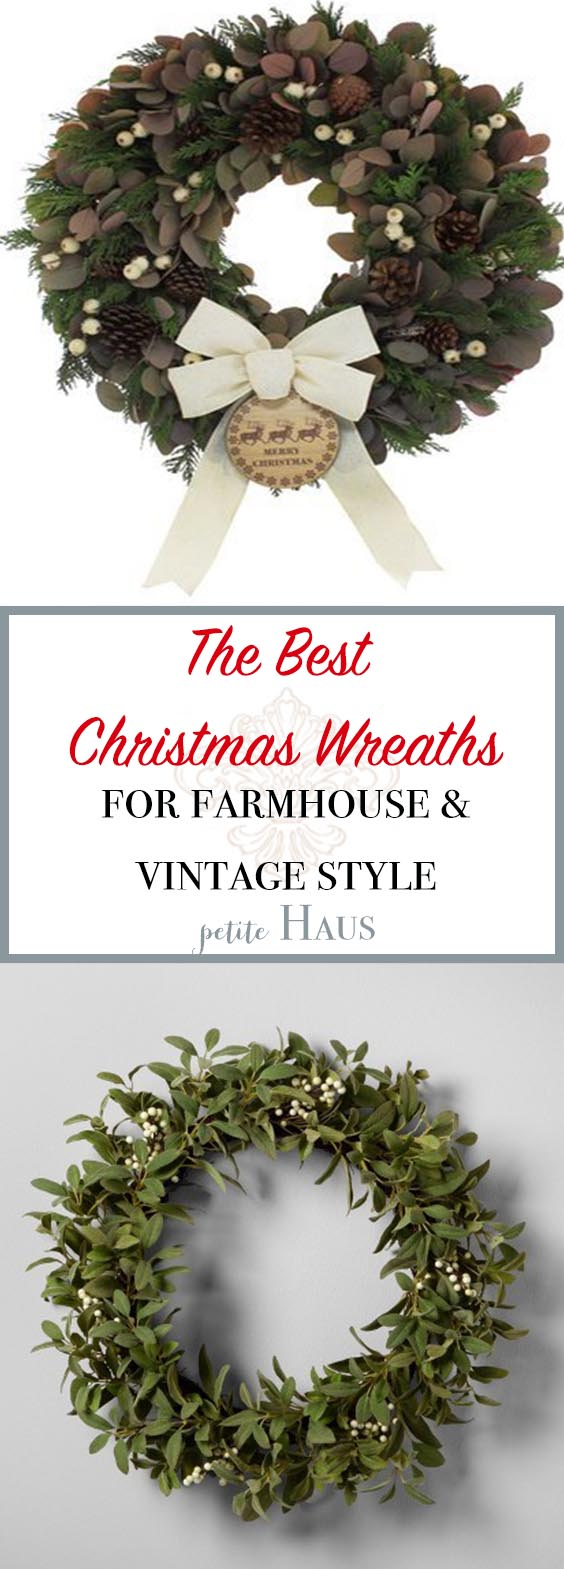 the best christmas wreaths for vintage and farmhouse style decor